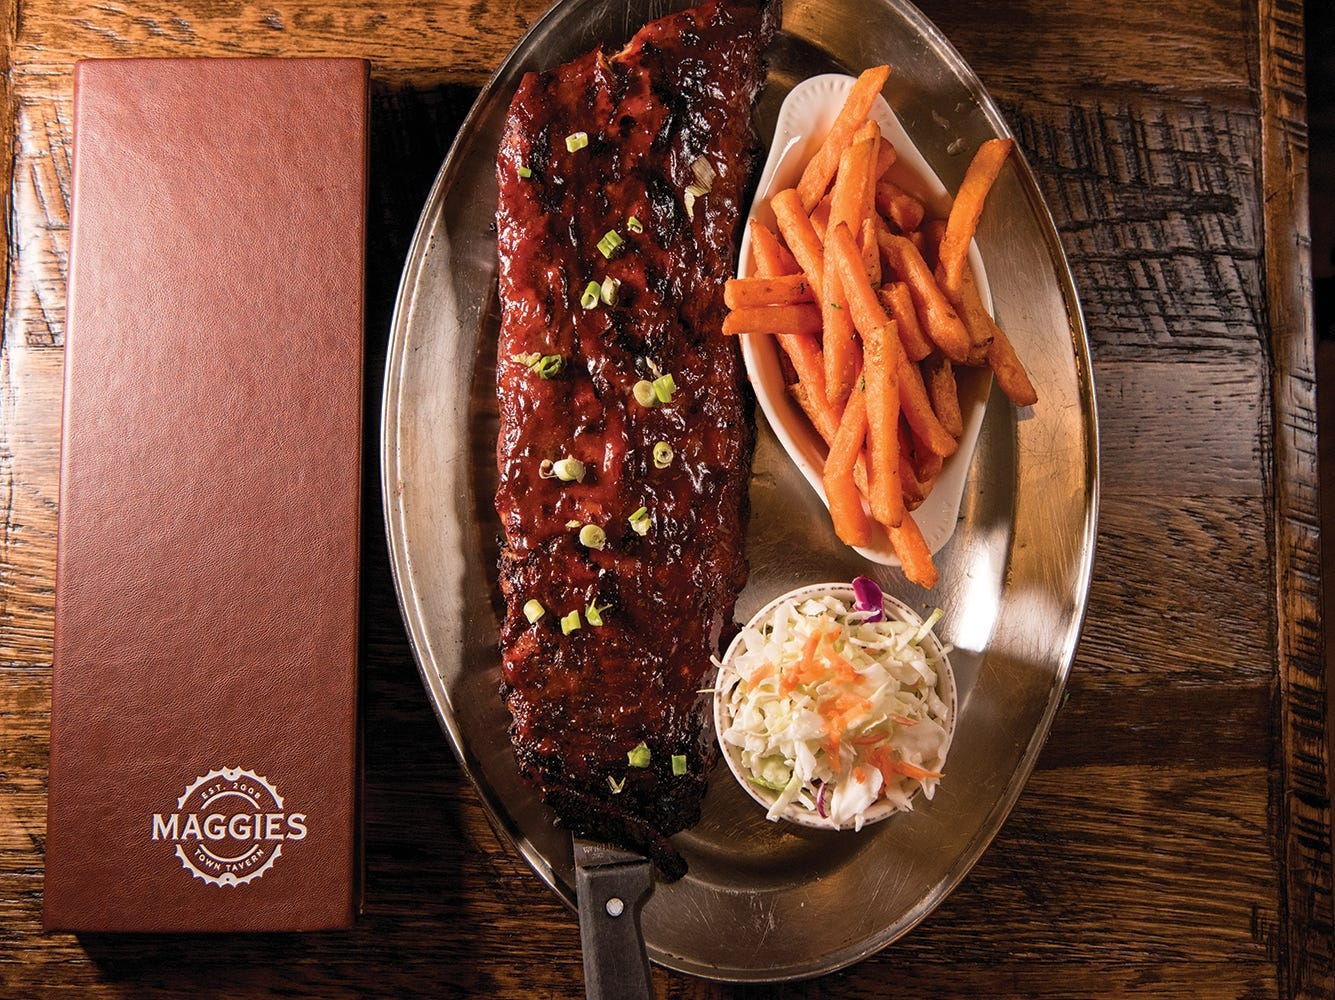 Rack of ribs at Maggie's Town Tavern in Wayne, NJ shown on Thursday May 31, 2018.